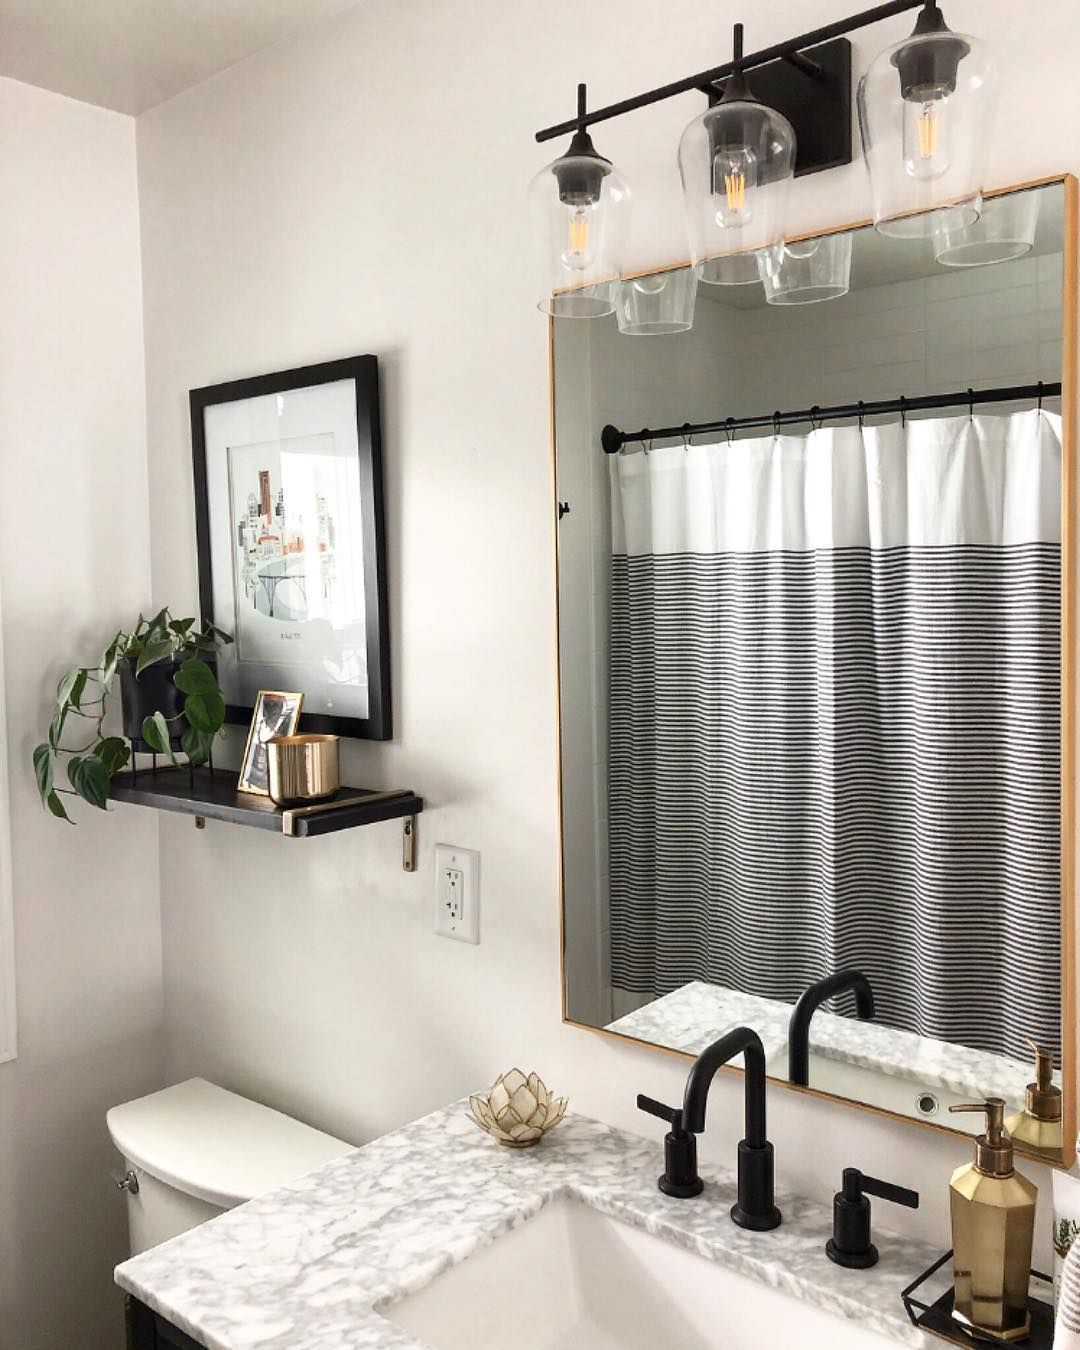 Our Turkish Shower Curtain Looks Pretty Good In Simaspaces Bathroom If You Ask Us Stylish Shower Curtain Bathroom Decor Shower